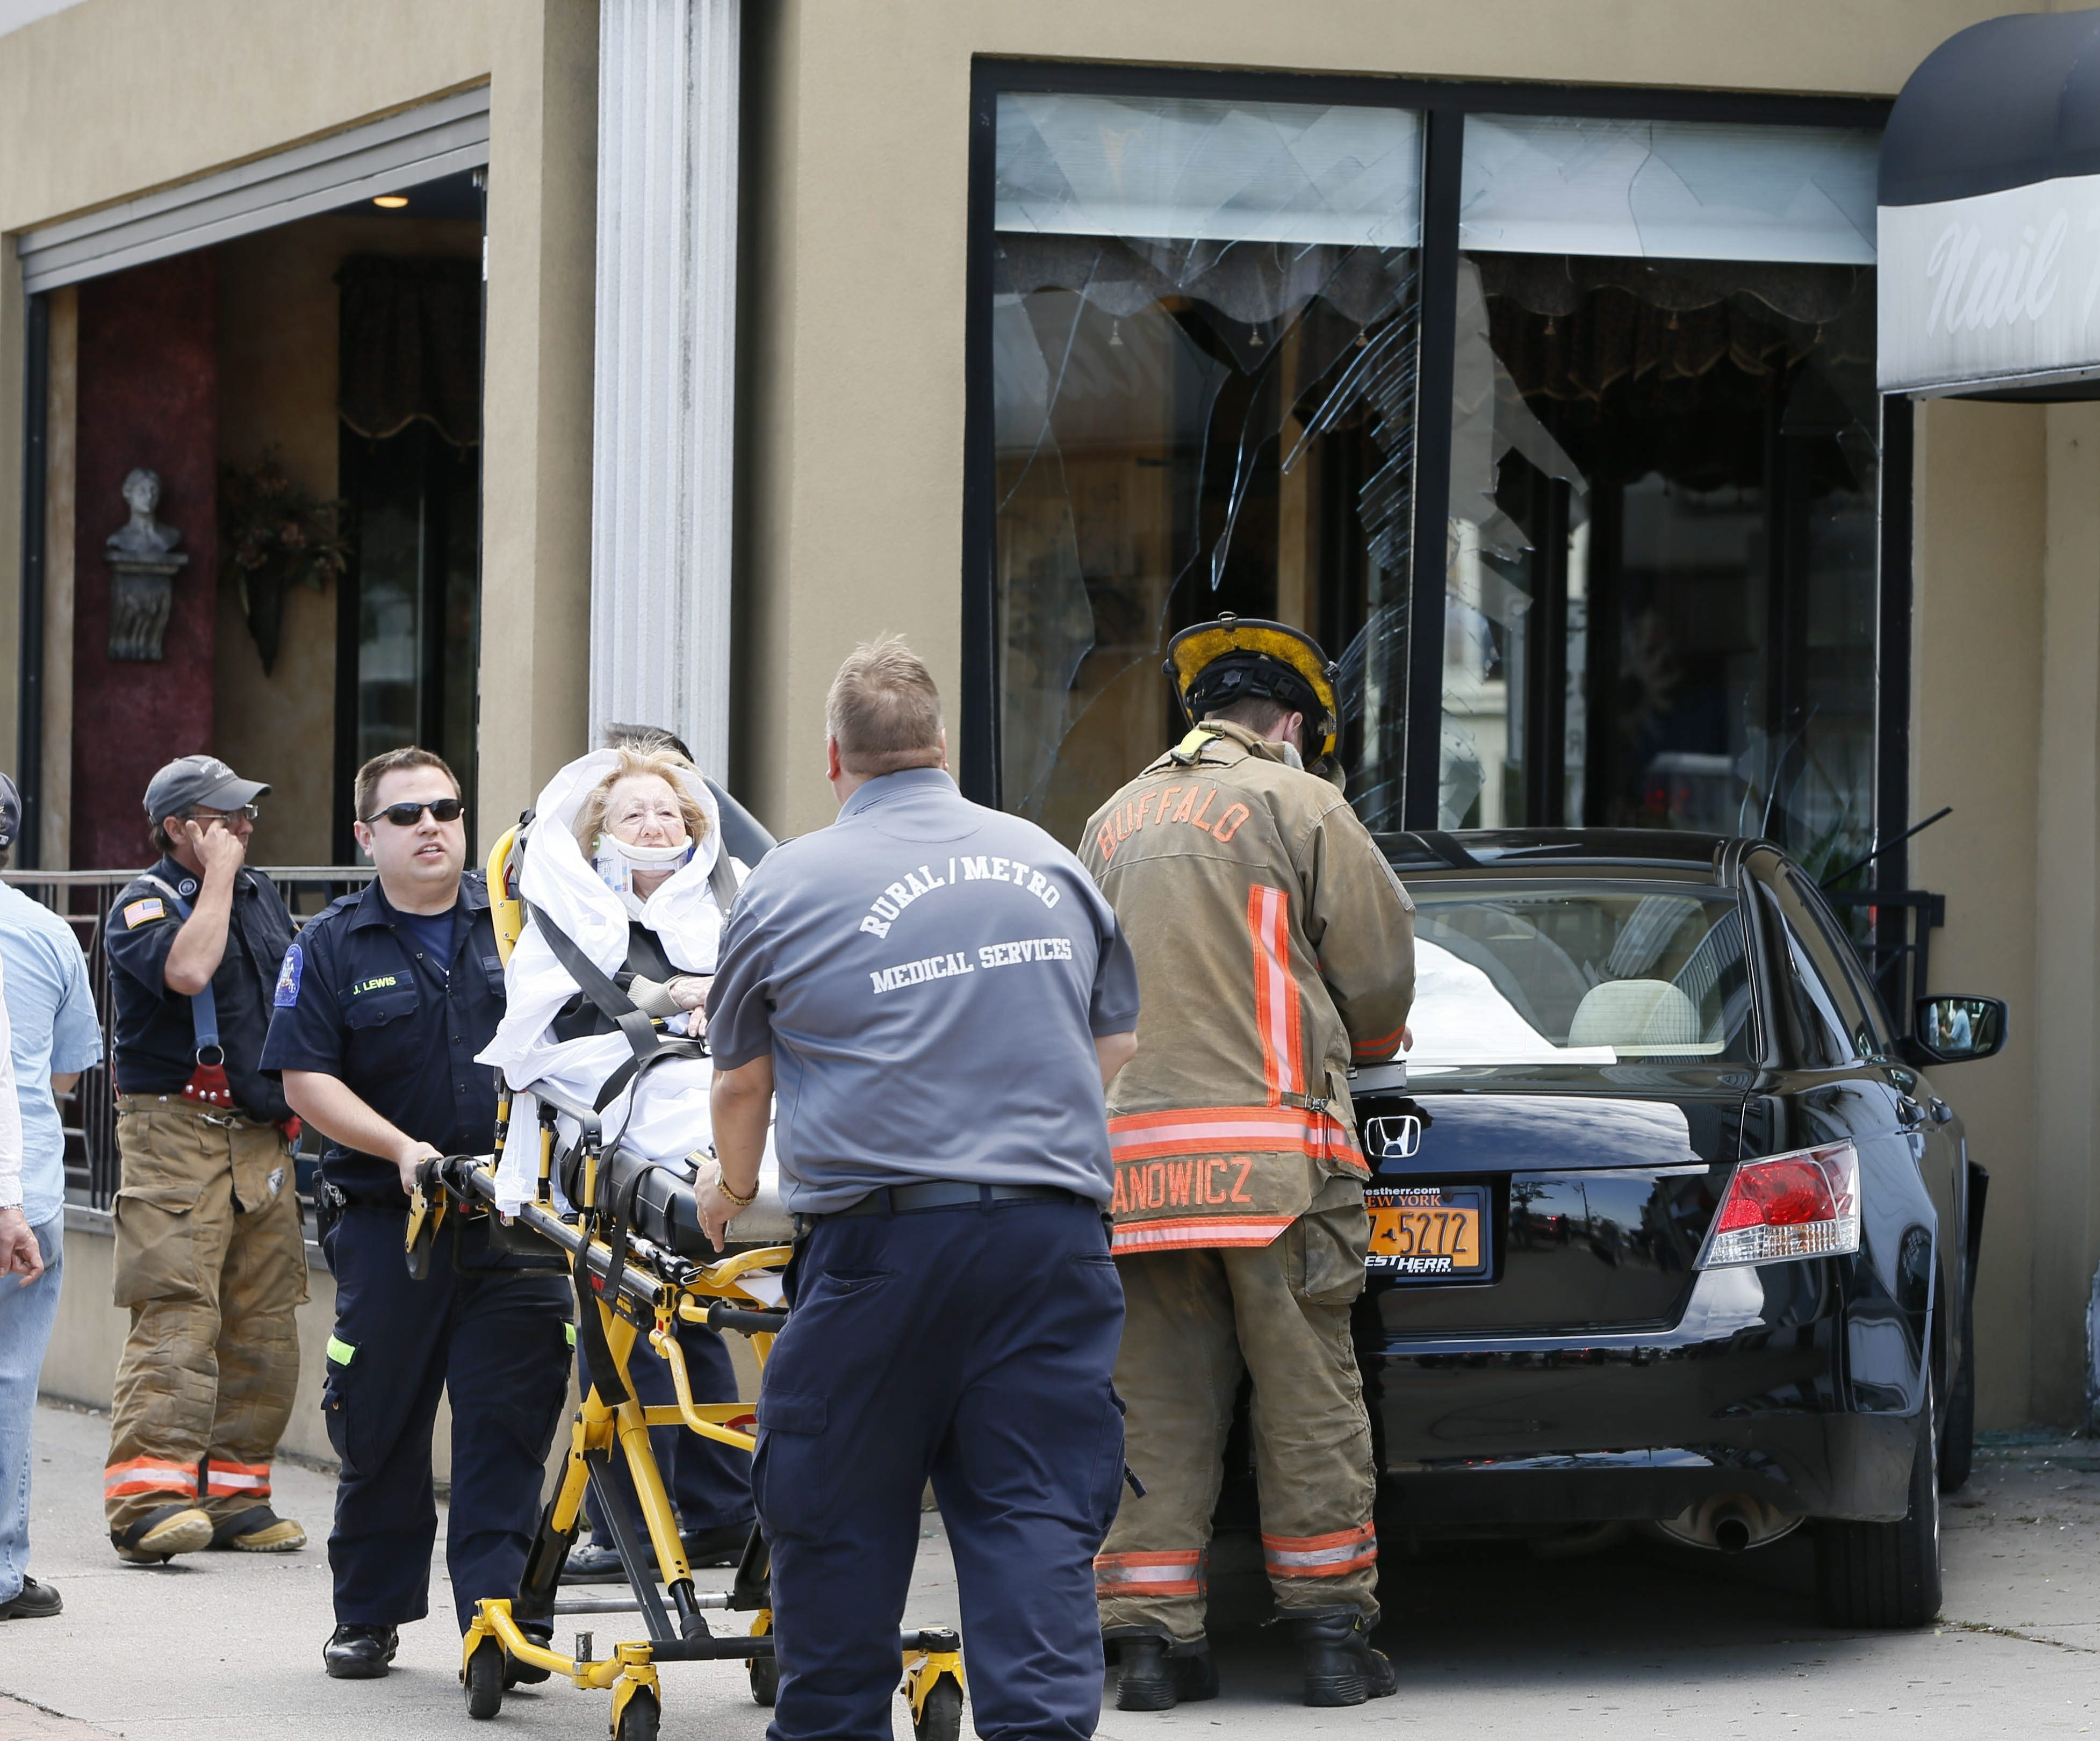 A 90-year-old woman is removed from car she was driving after it crashed into the Kostas Family Restaurant patio on Hertel Avenue. She was taken to the hospital for treatment of minor injuries.